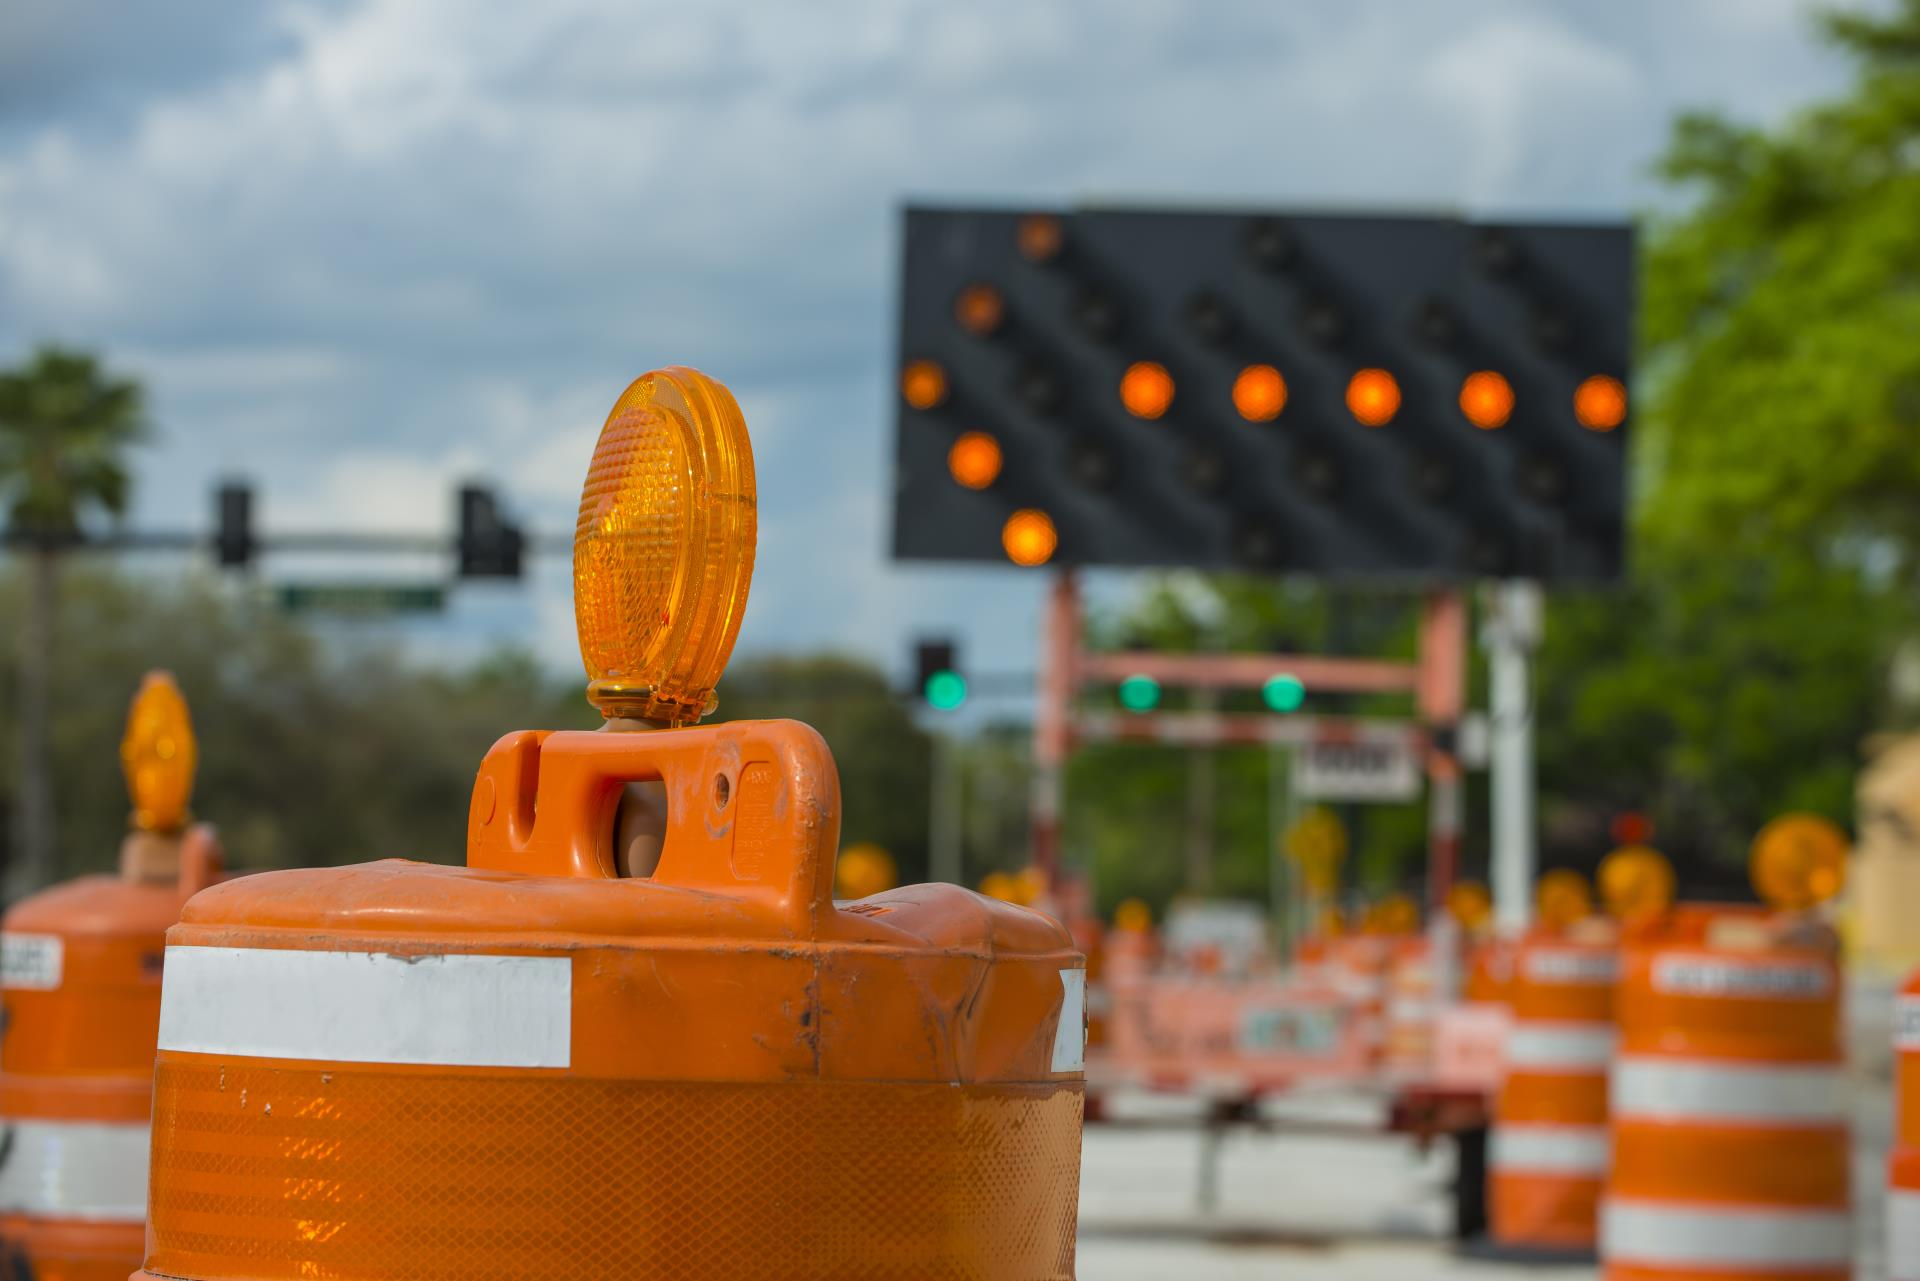 Paving Taking Place on June 12, 2019: Delays Expected